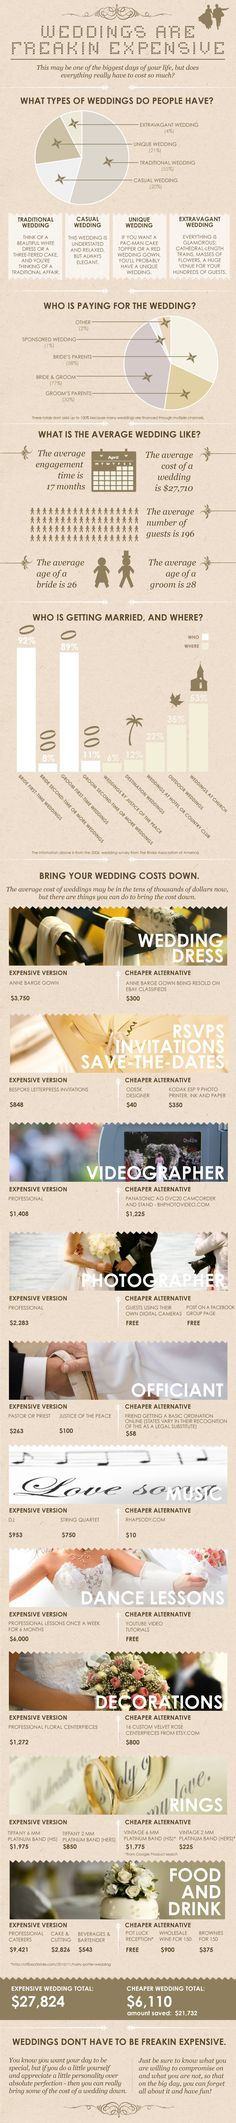 #wedding #photography #cost #budget